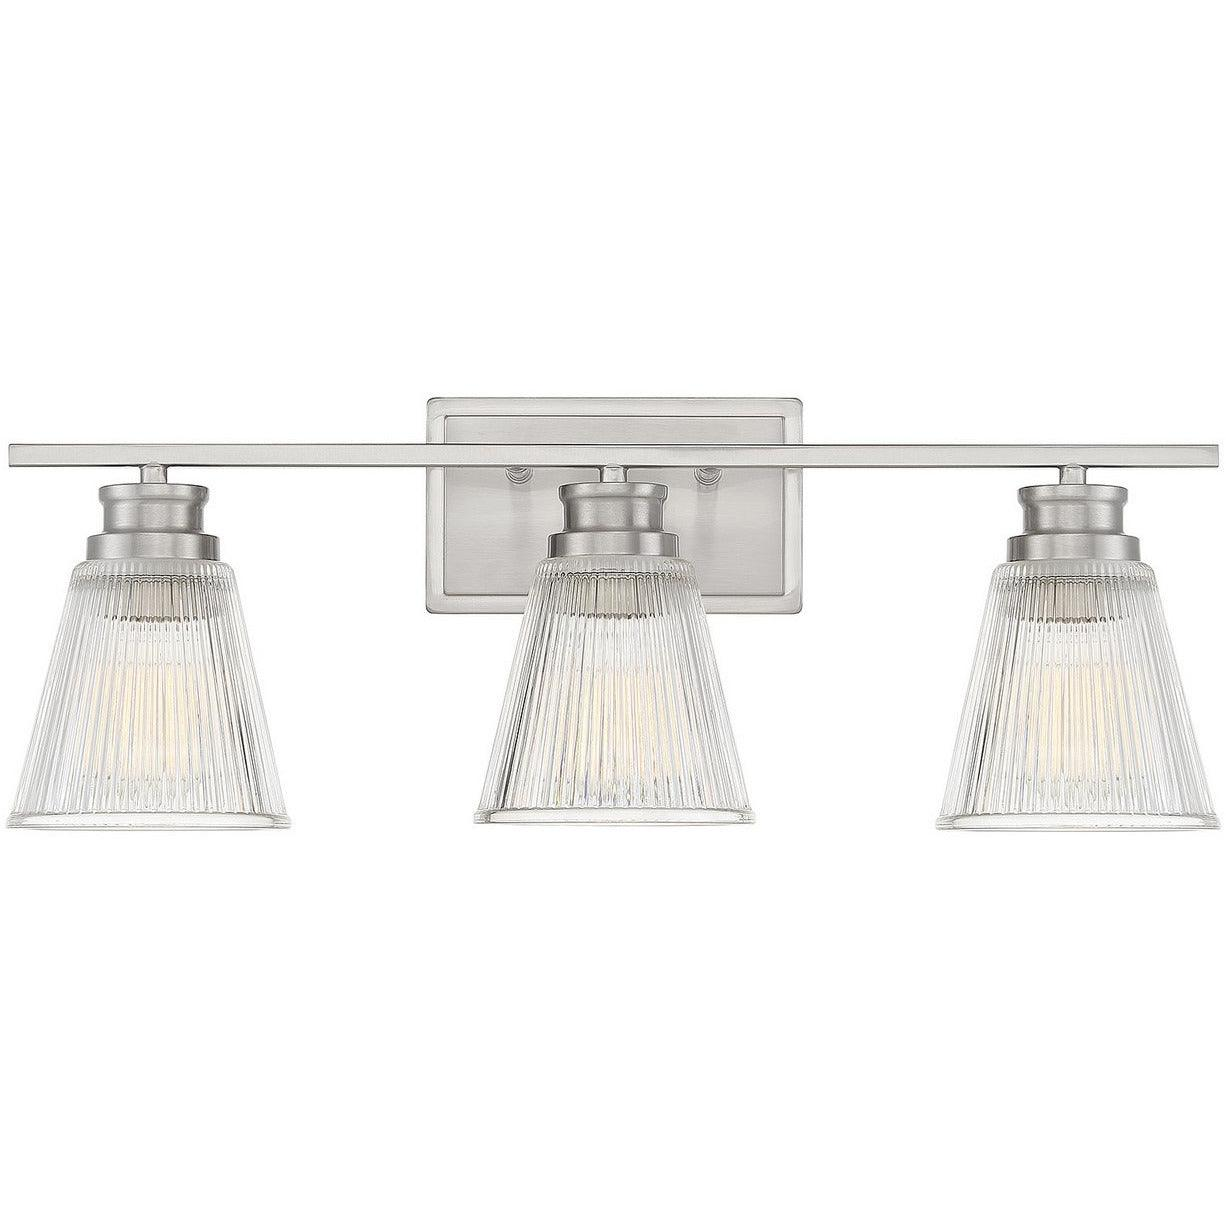 Meridian Lite Trends -  - Three Light Bath Bar - Meridian - Brushed Nickel